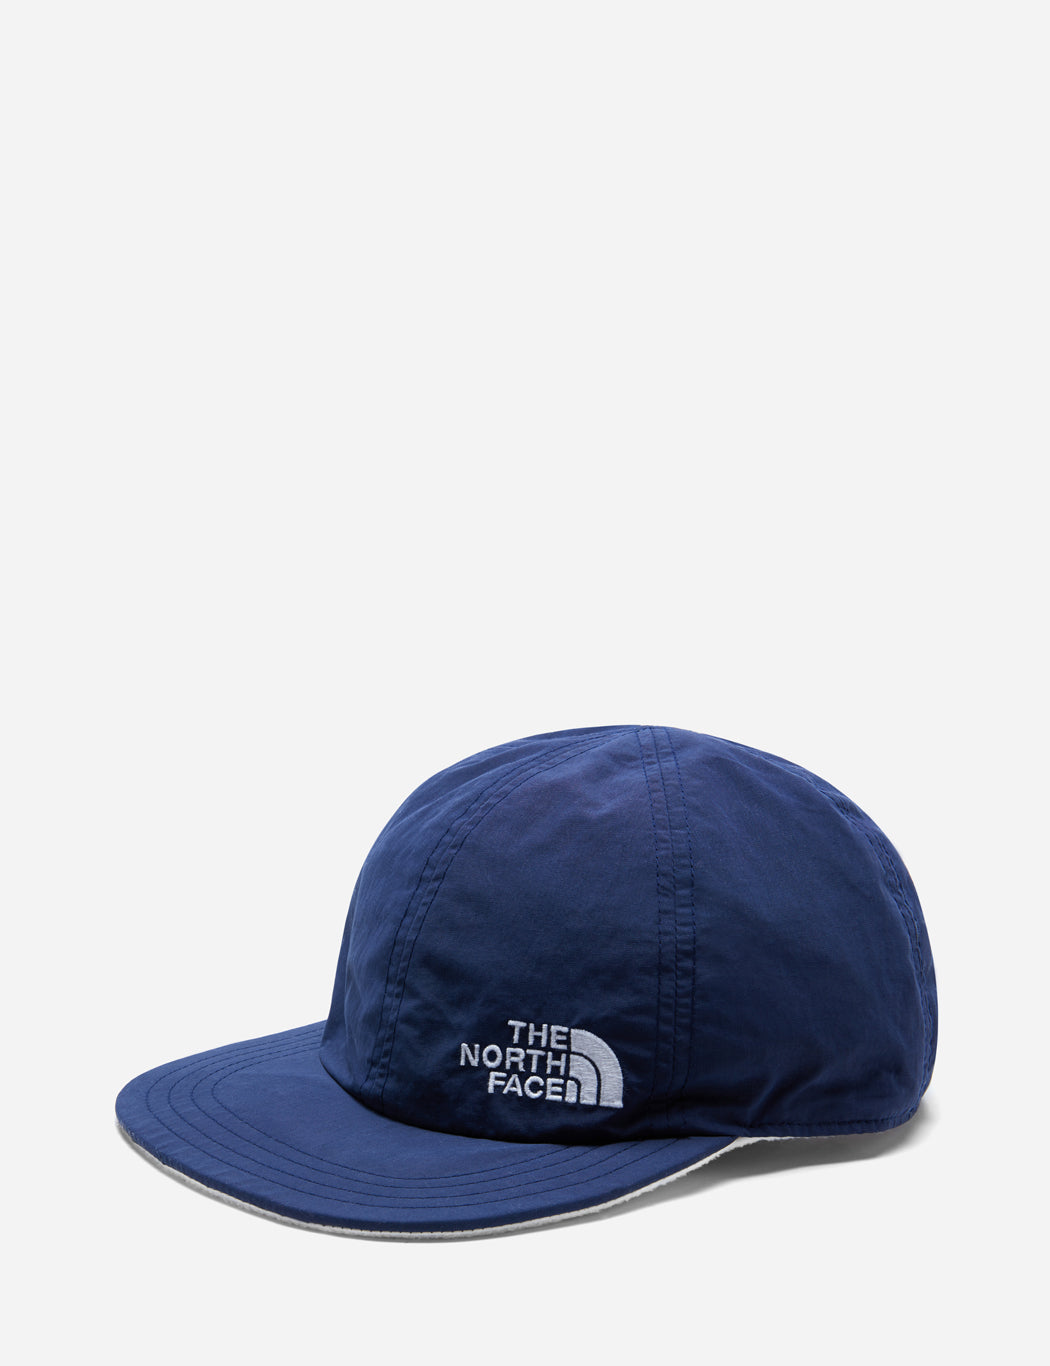 North Face Reversible Norm Hat (Fleece) - Blue/White | URBAN EXCESS.